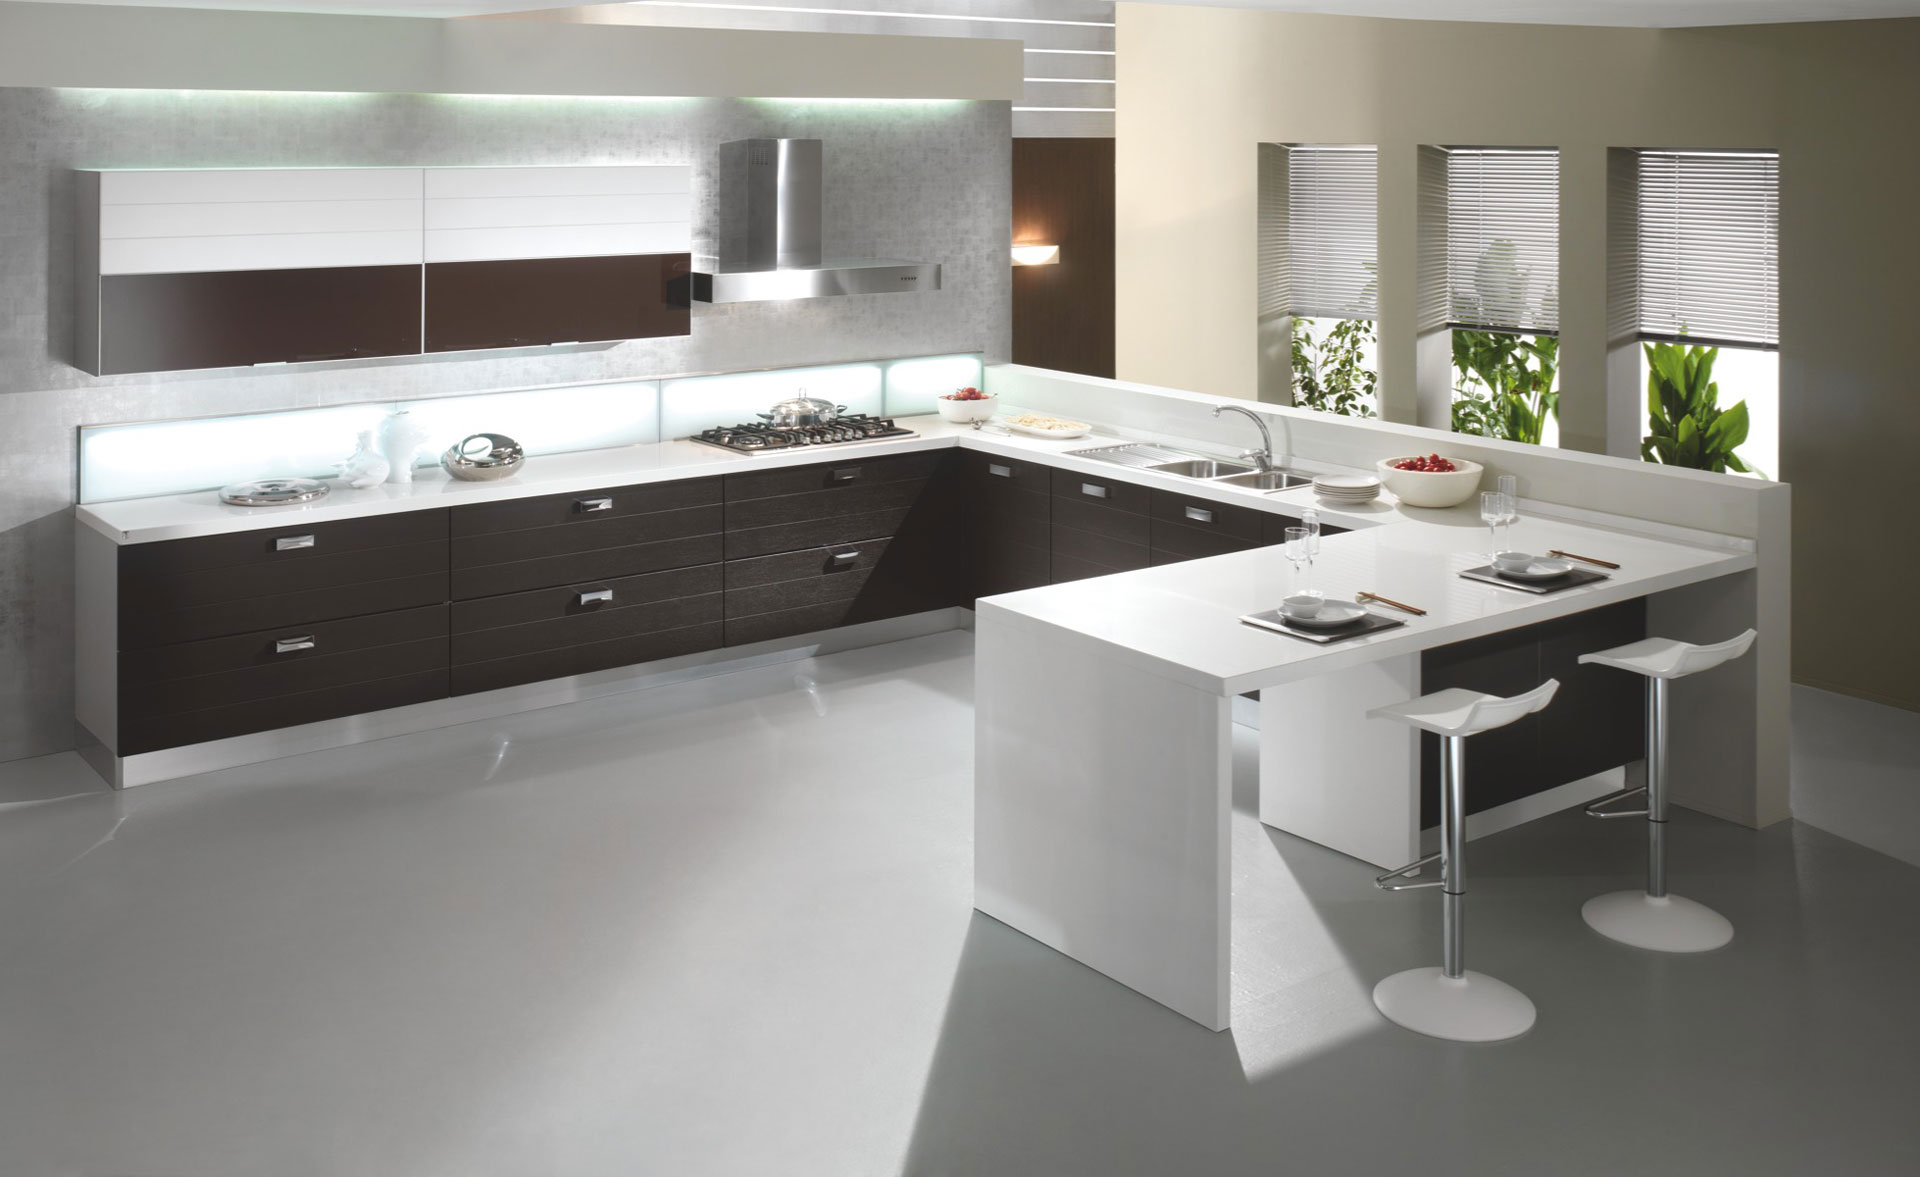 Awesome cucine moderne bianche e nere photos - Cucine nere lucide ...